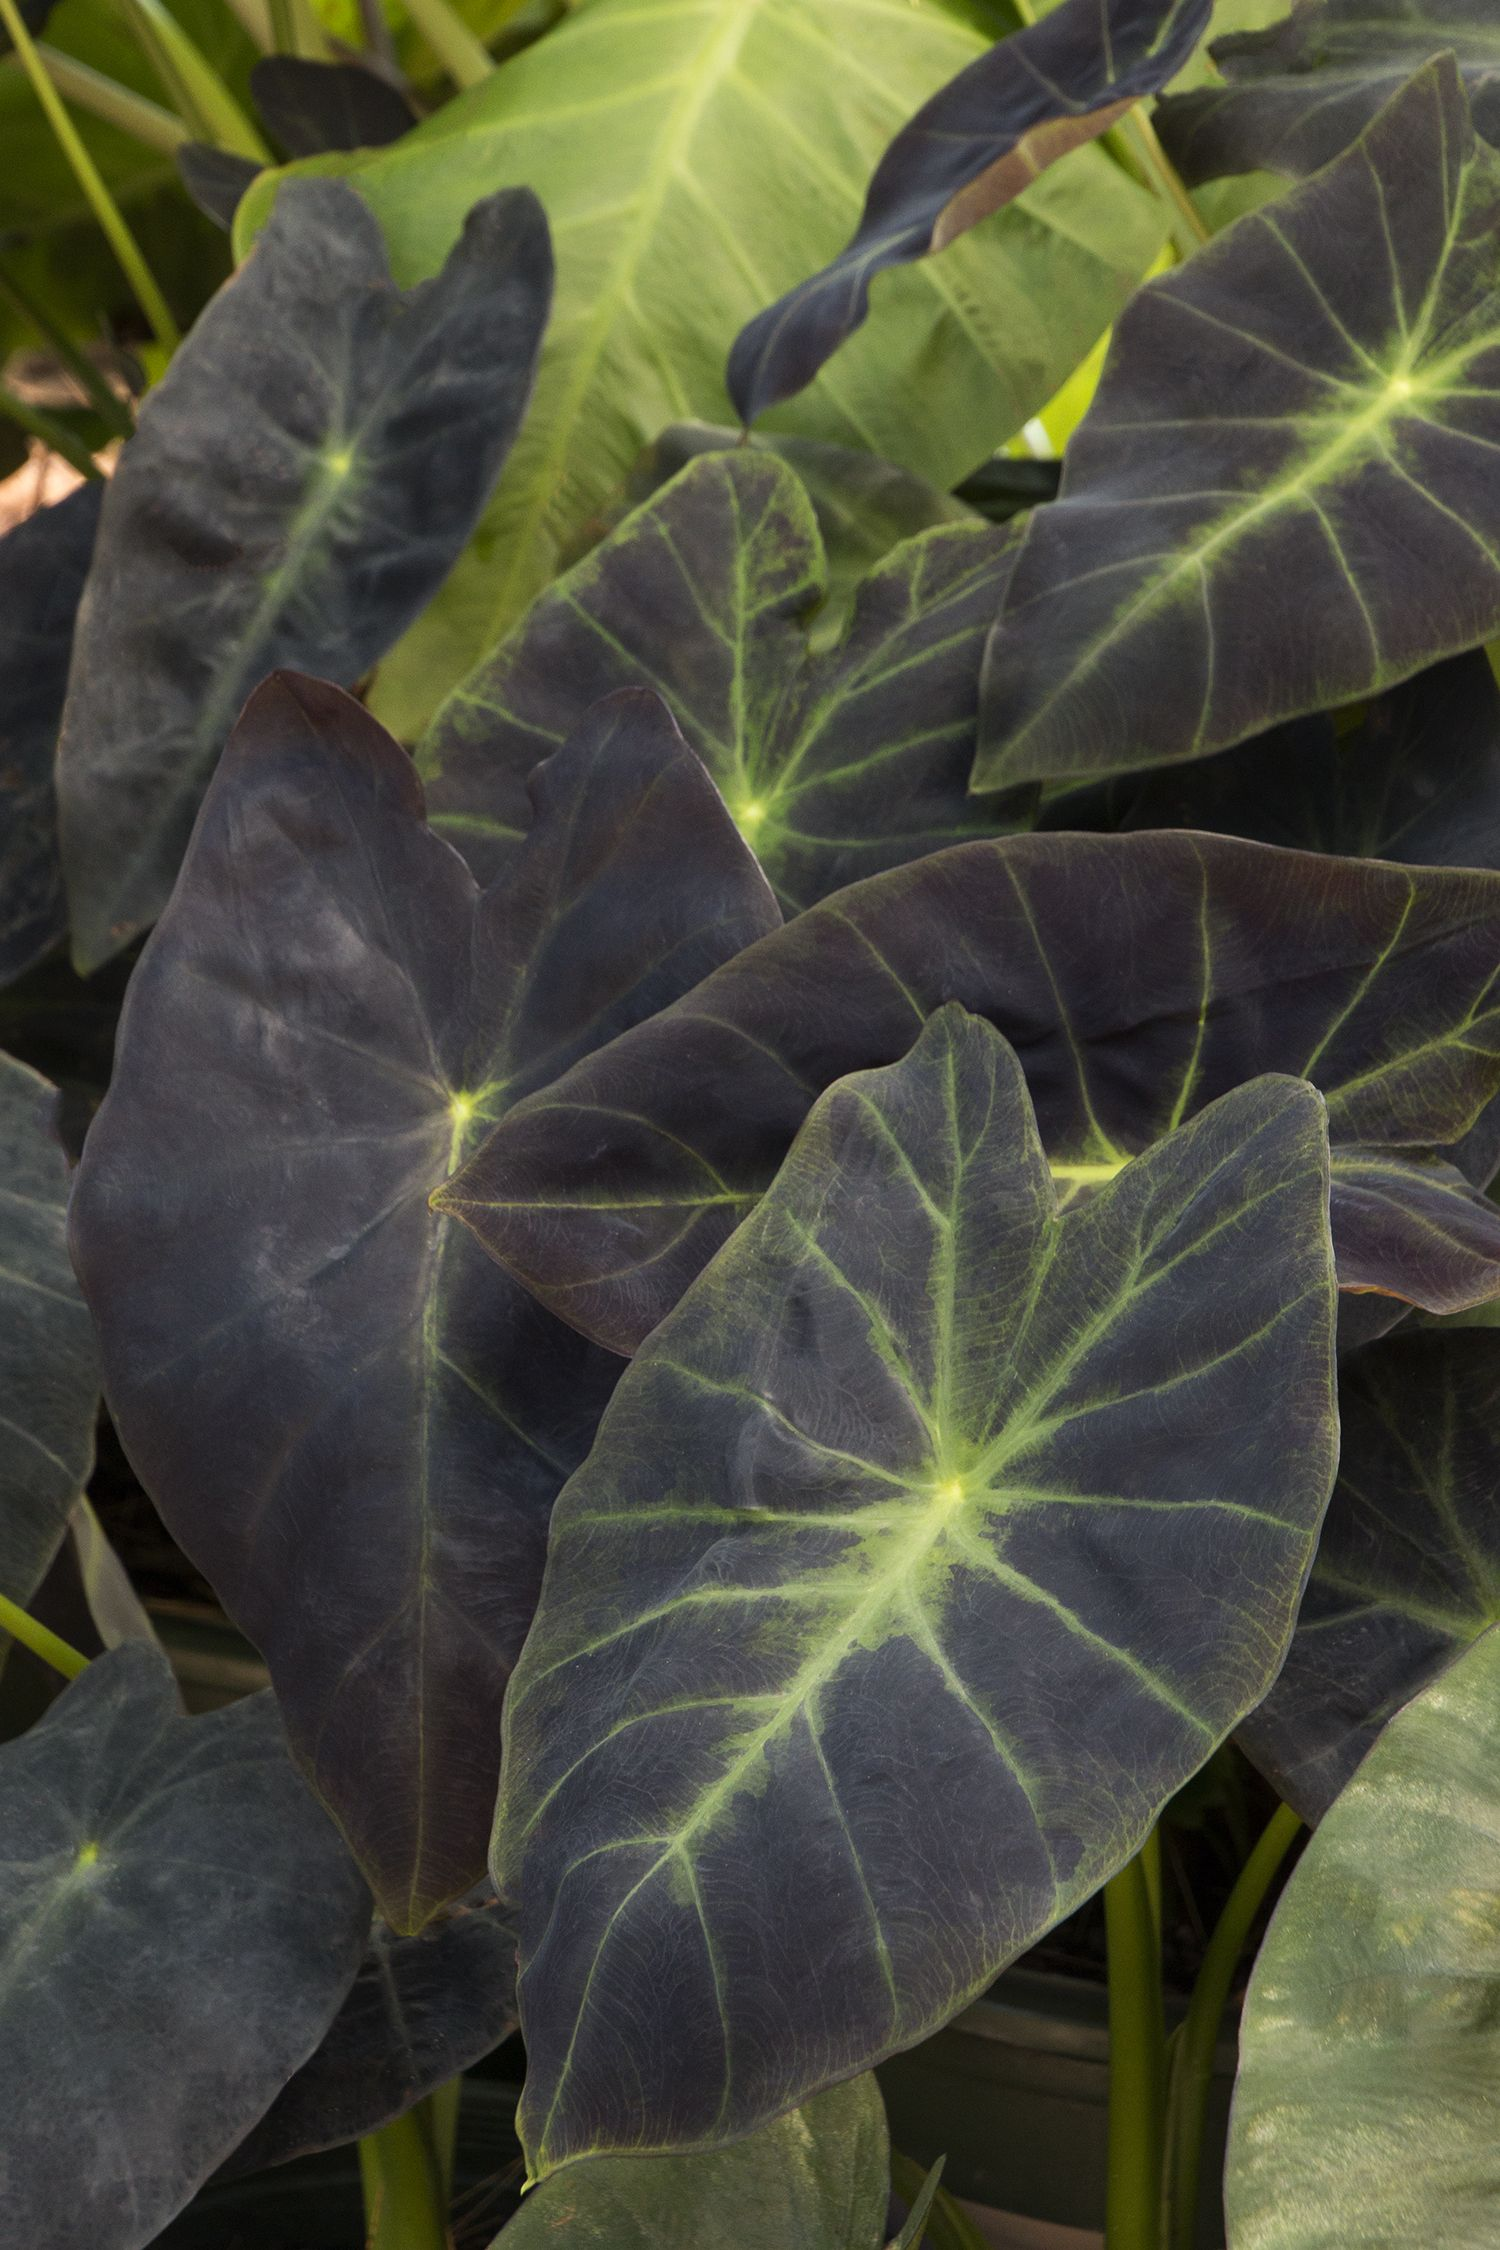 Monrovia S Imperial Taro Details And Information Learn More About Plants Best Practices For Possible Plant Performance